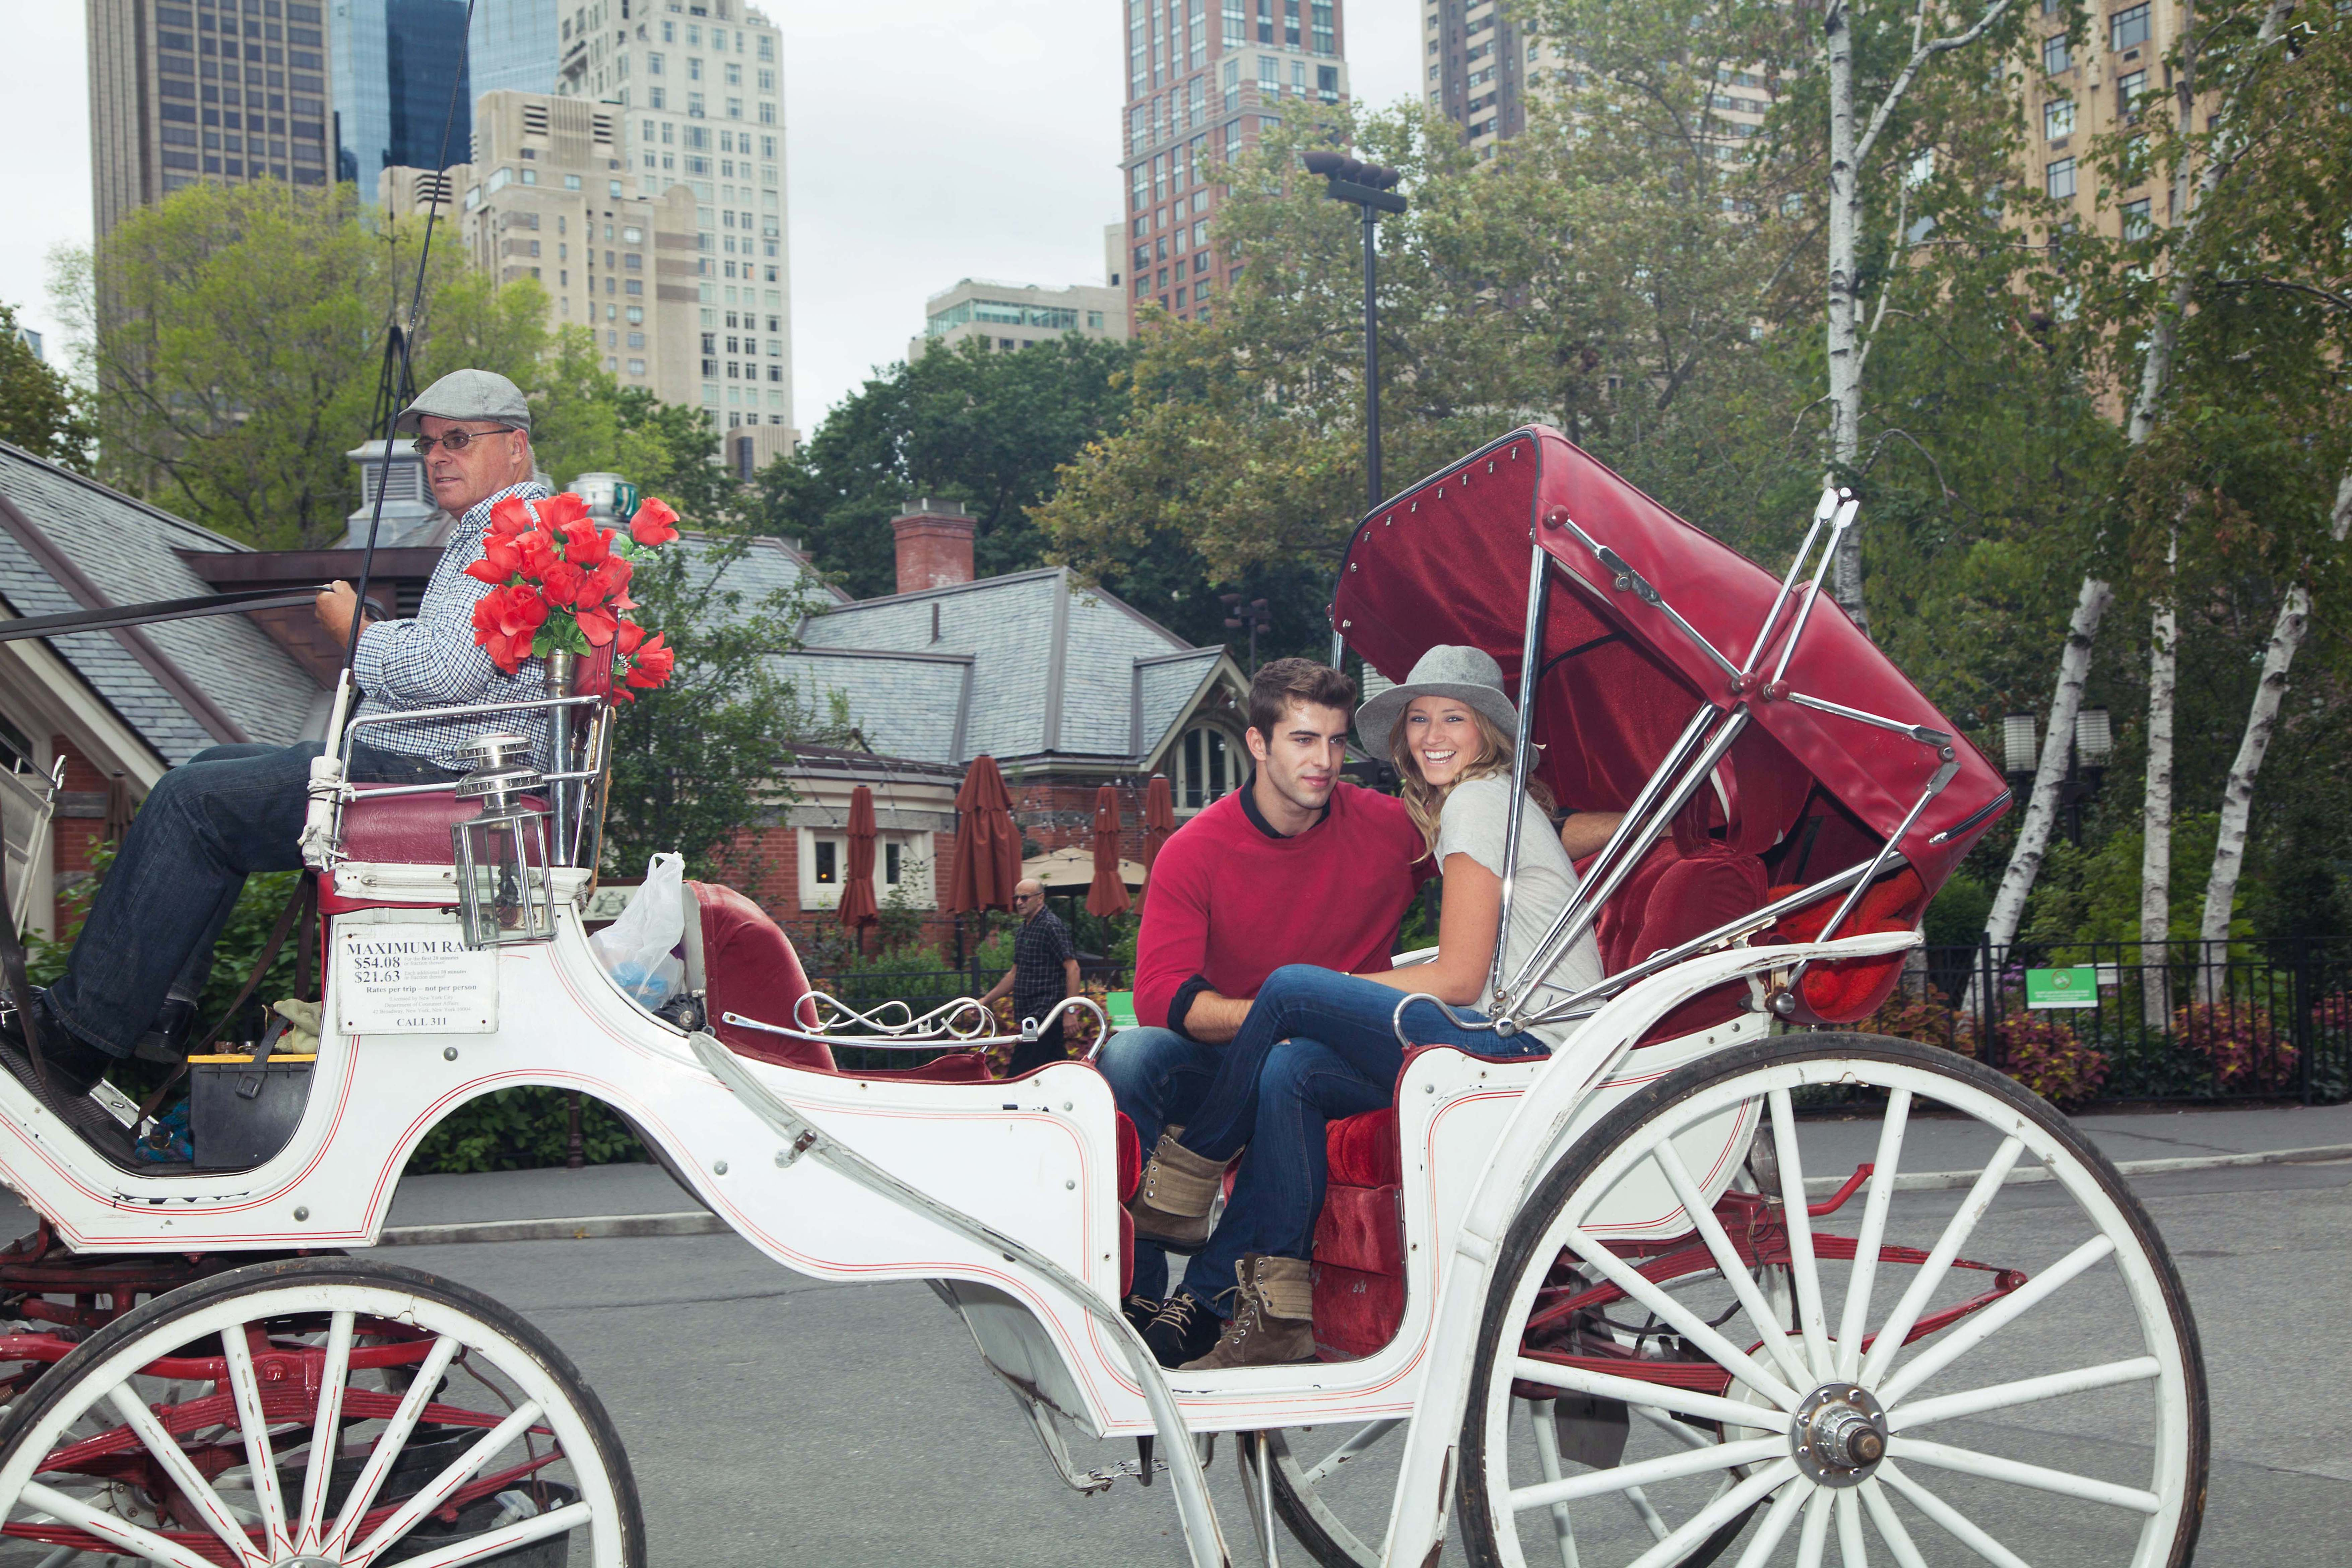 Romantic ride in a horse-drawn carriage in Central Park